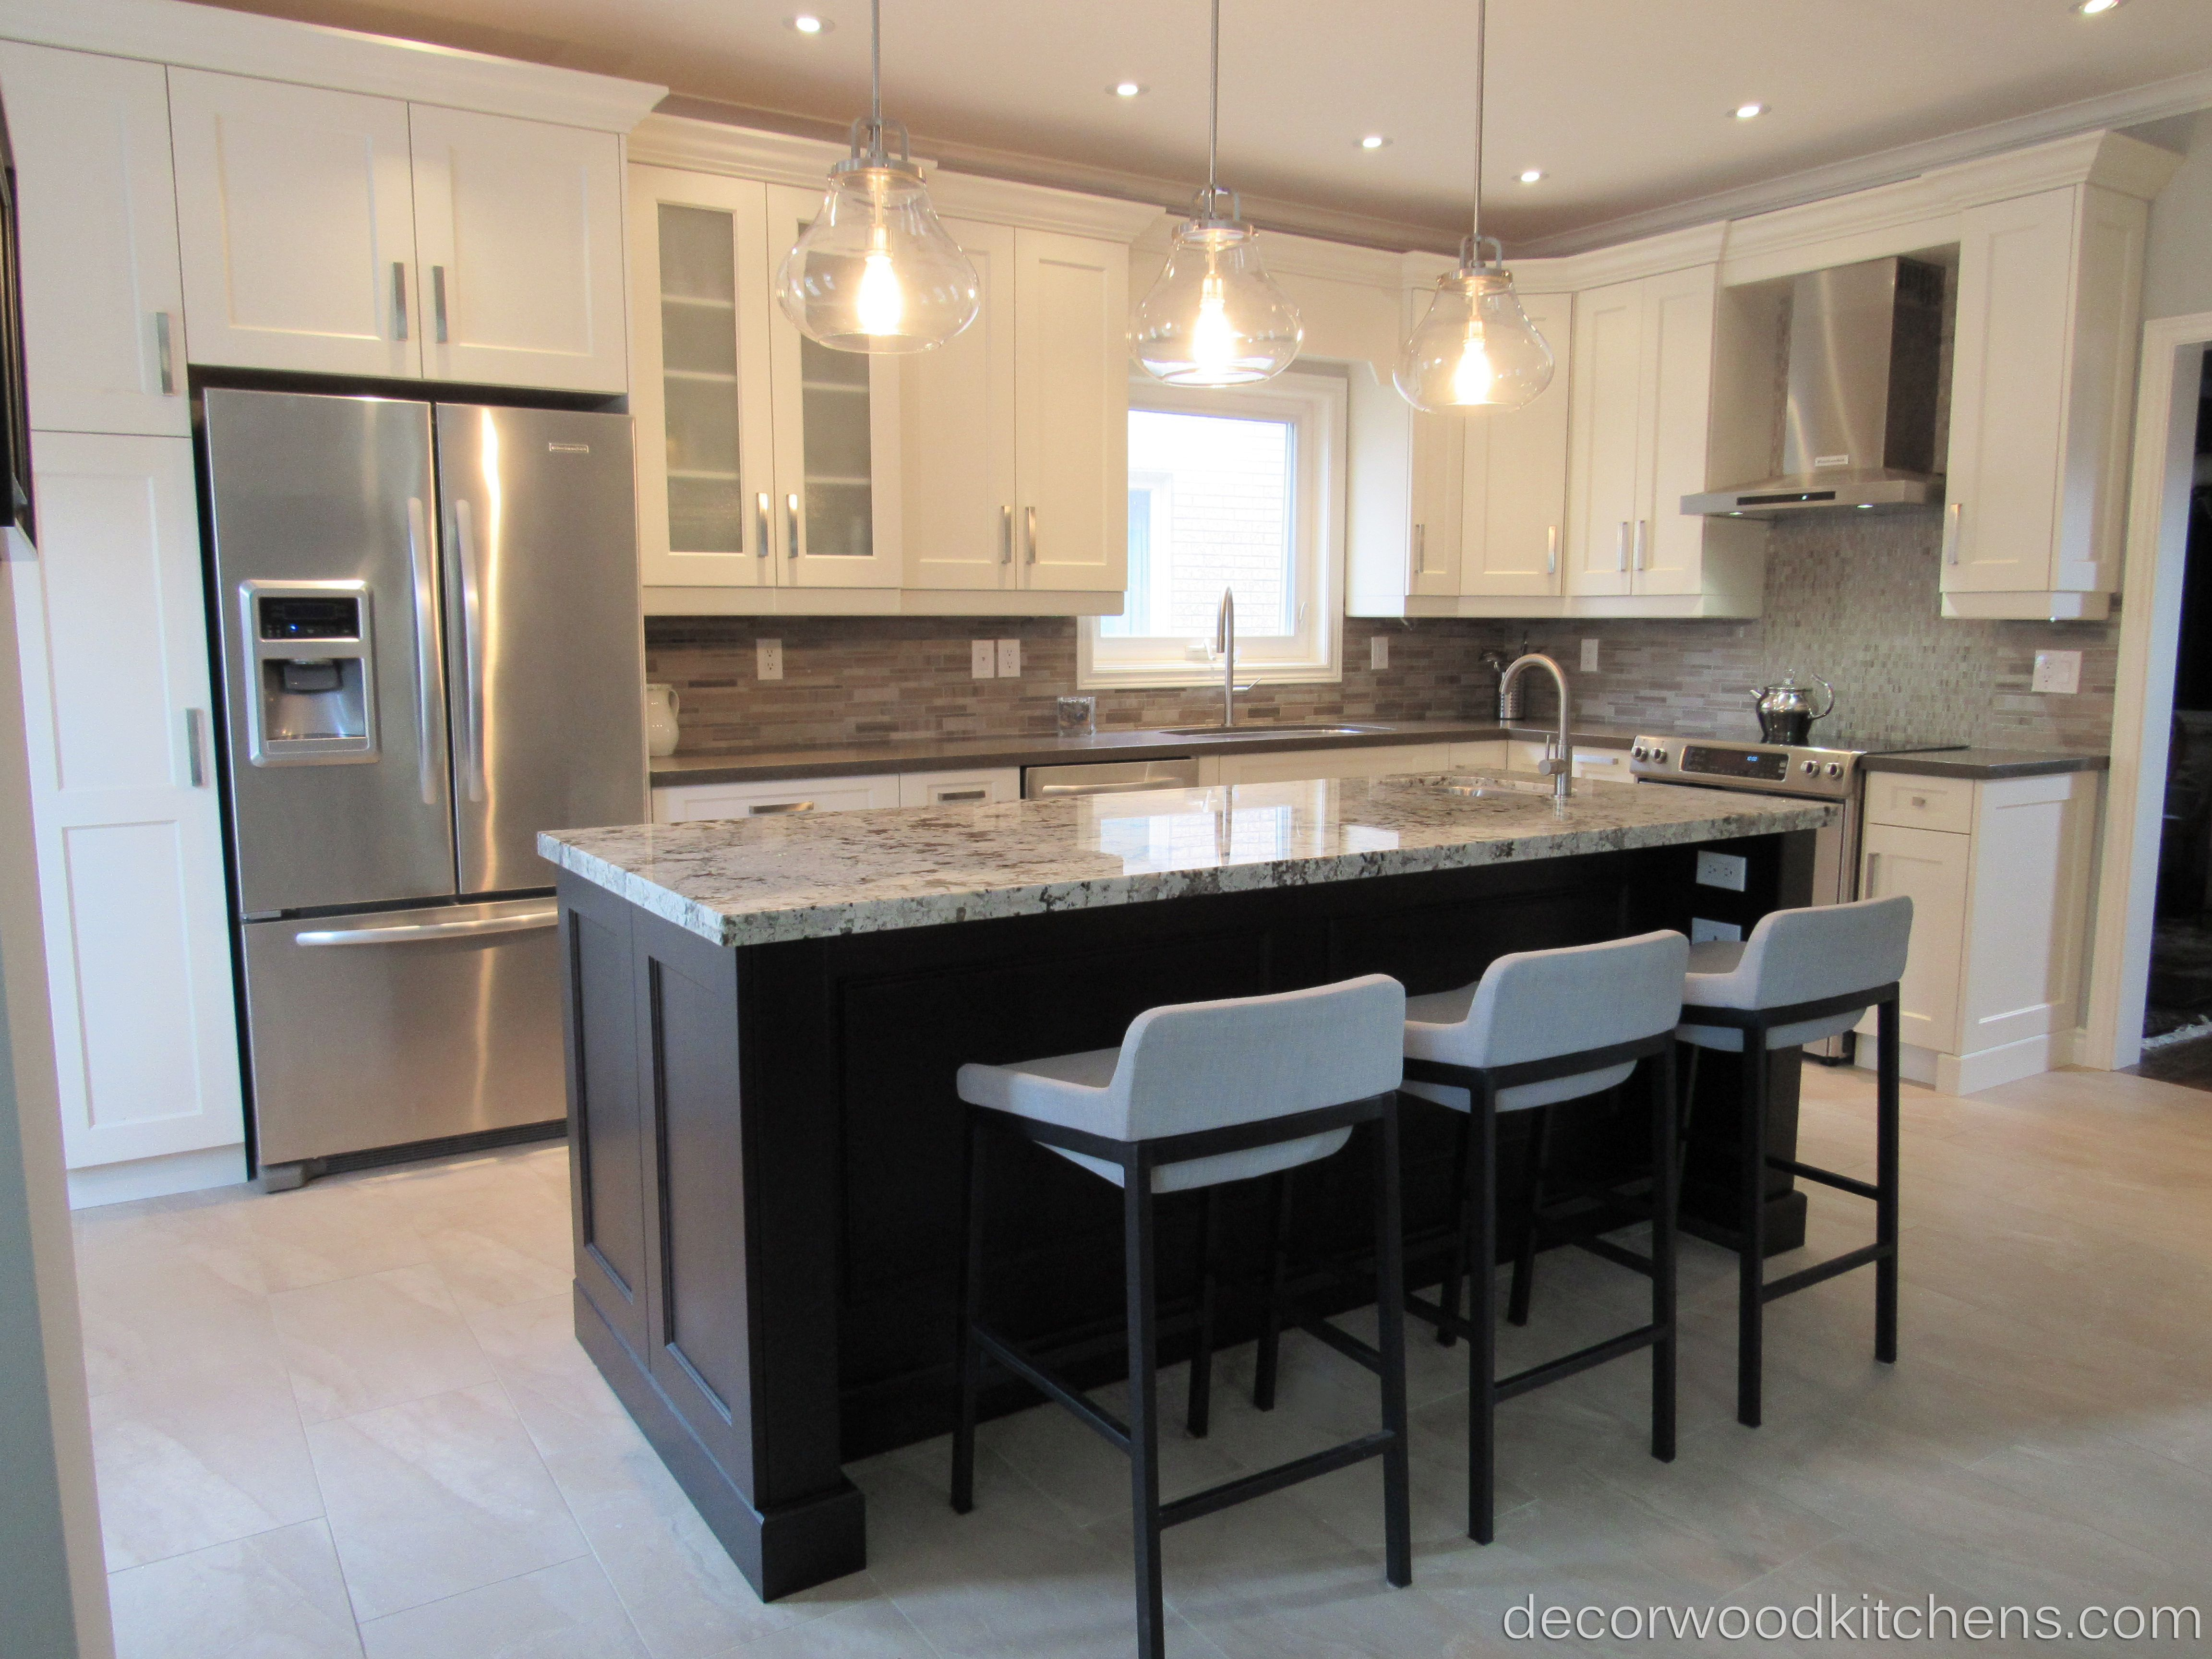 large sized open concept kitchen painted kitchen stained island granite countertop at island. Black Bedroom Furniture Sets. Home Design Ideas